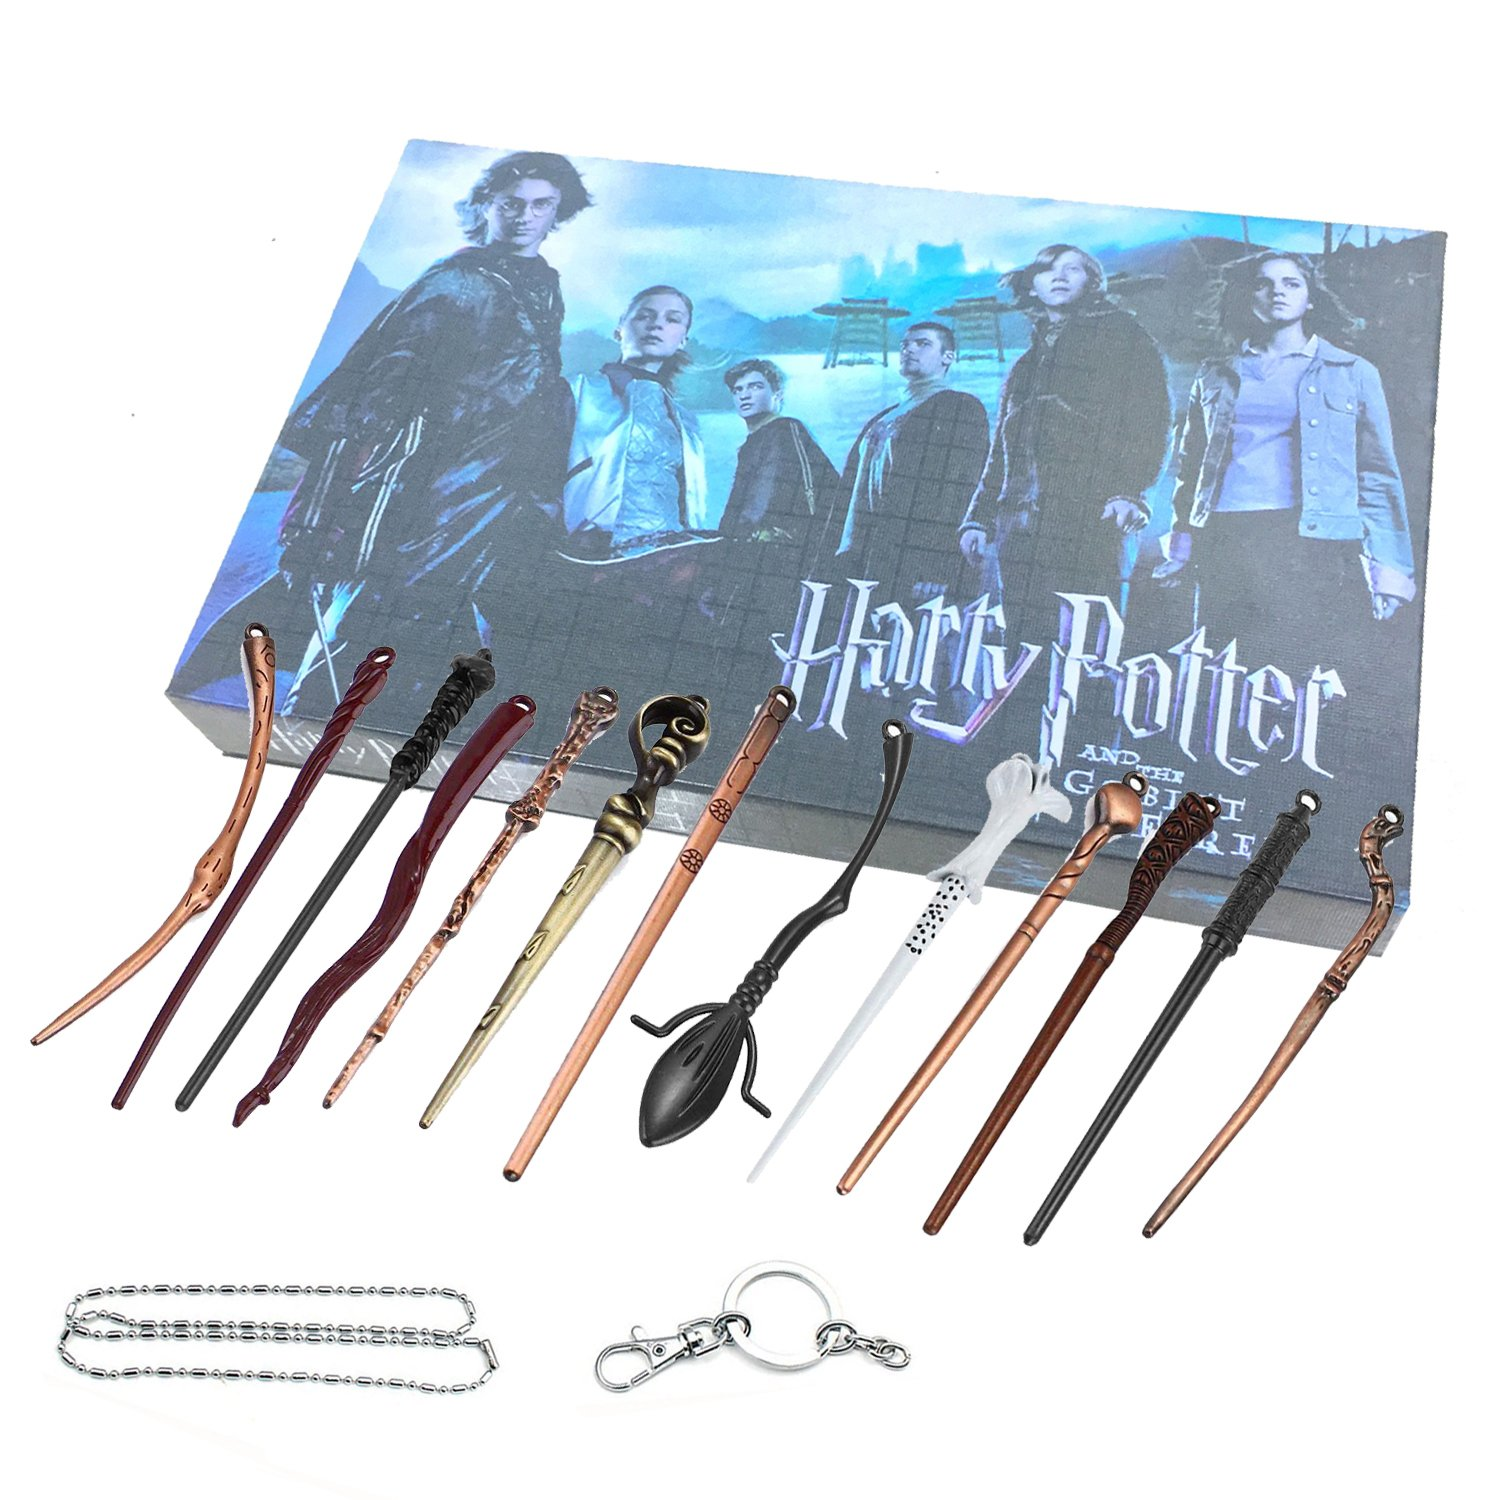 13 Styles Creative Cosplay Harry Potter Series Magic Wands New with Metal Core Magical Wands with Keychain Necklace for Kids by Harmoos (Image #2)